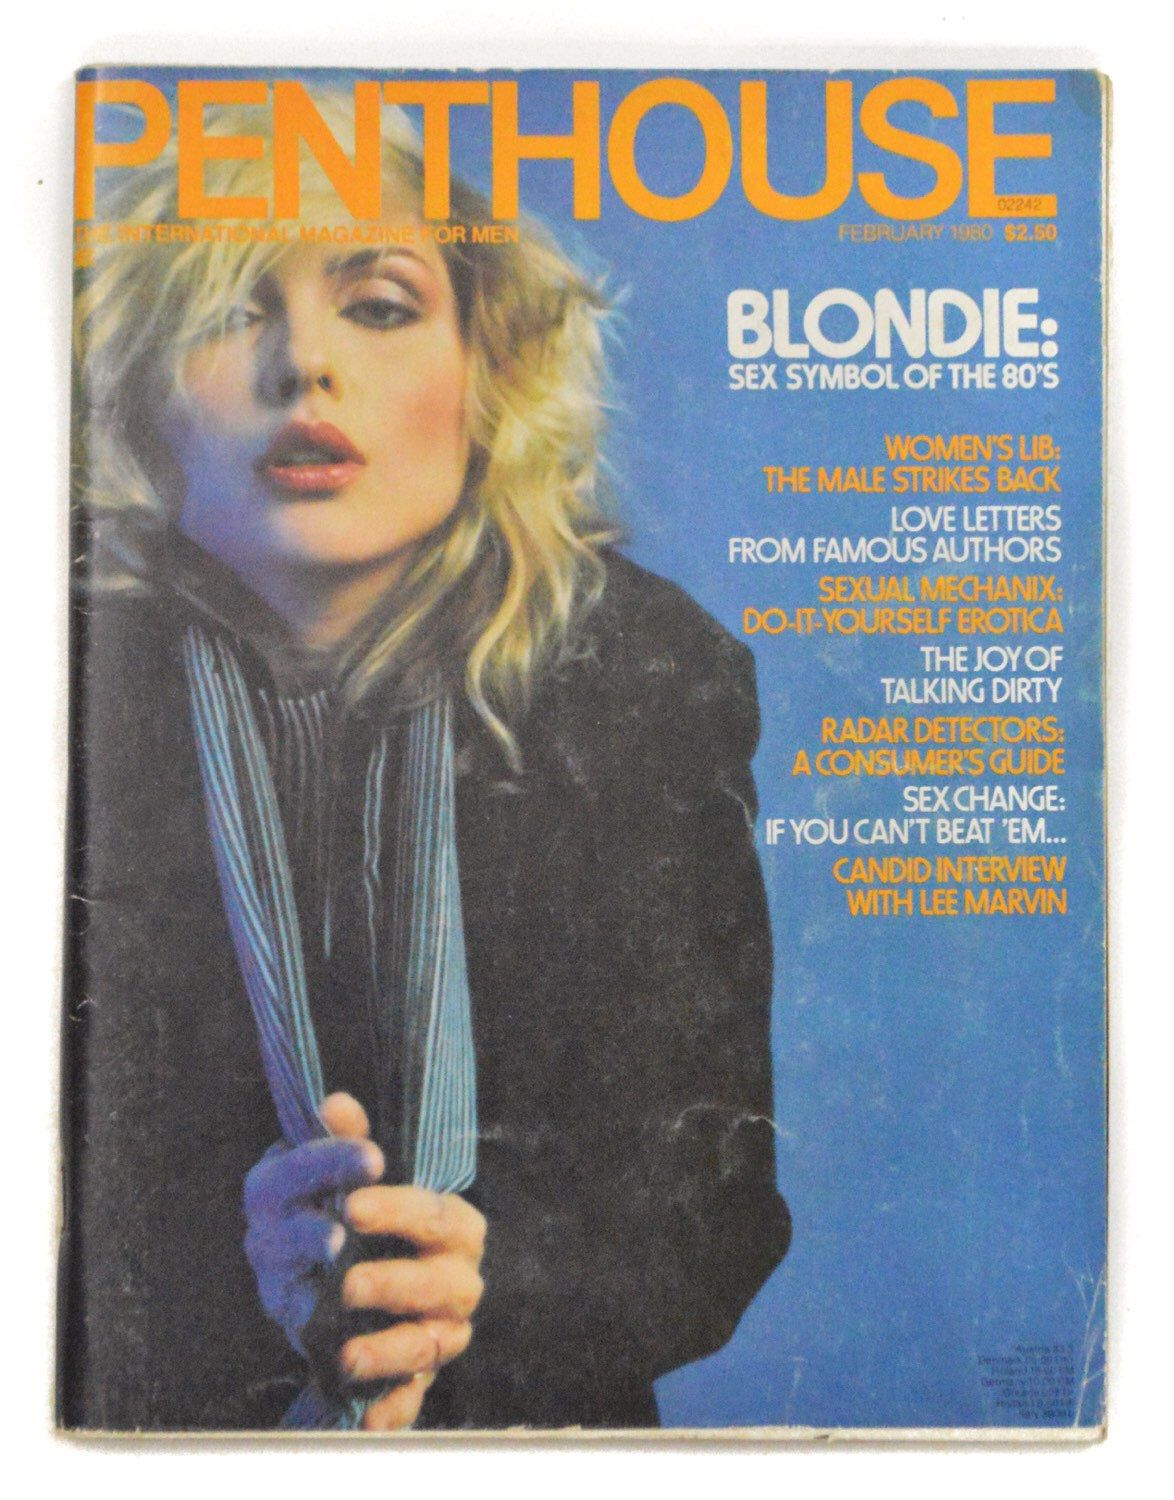 Debbie harry blondie hustler photo